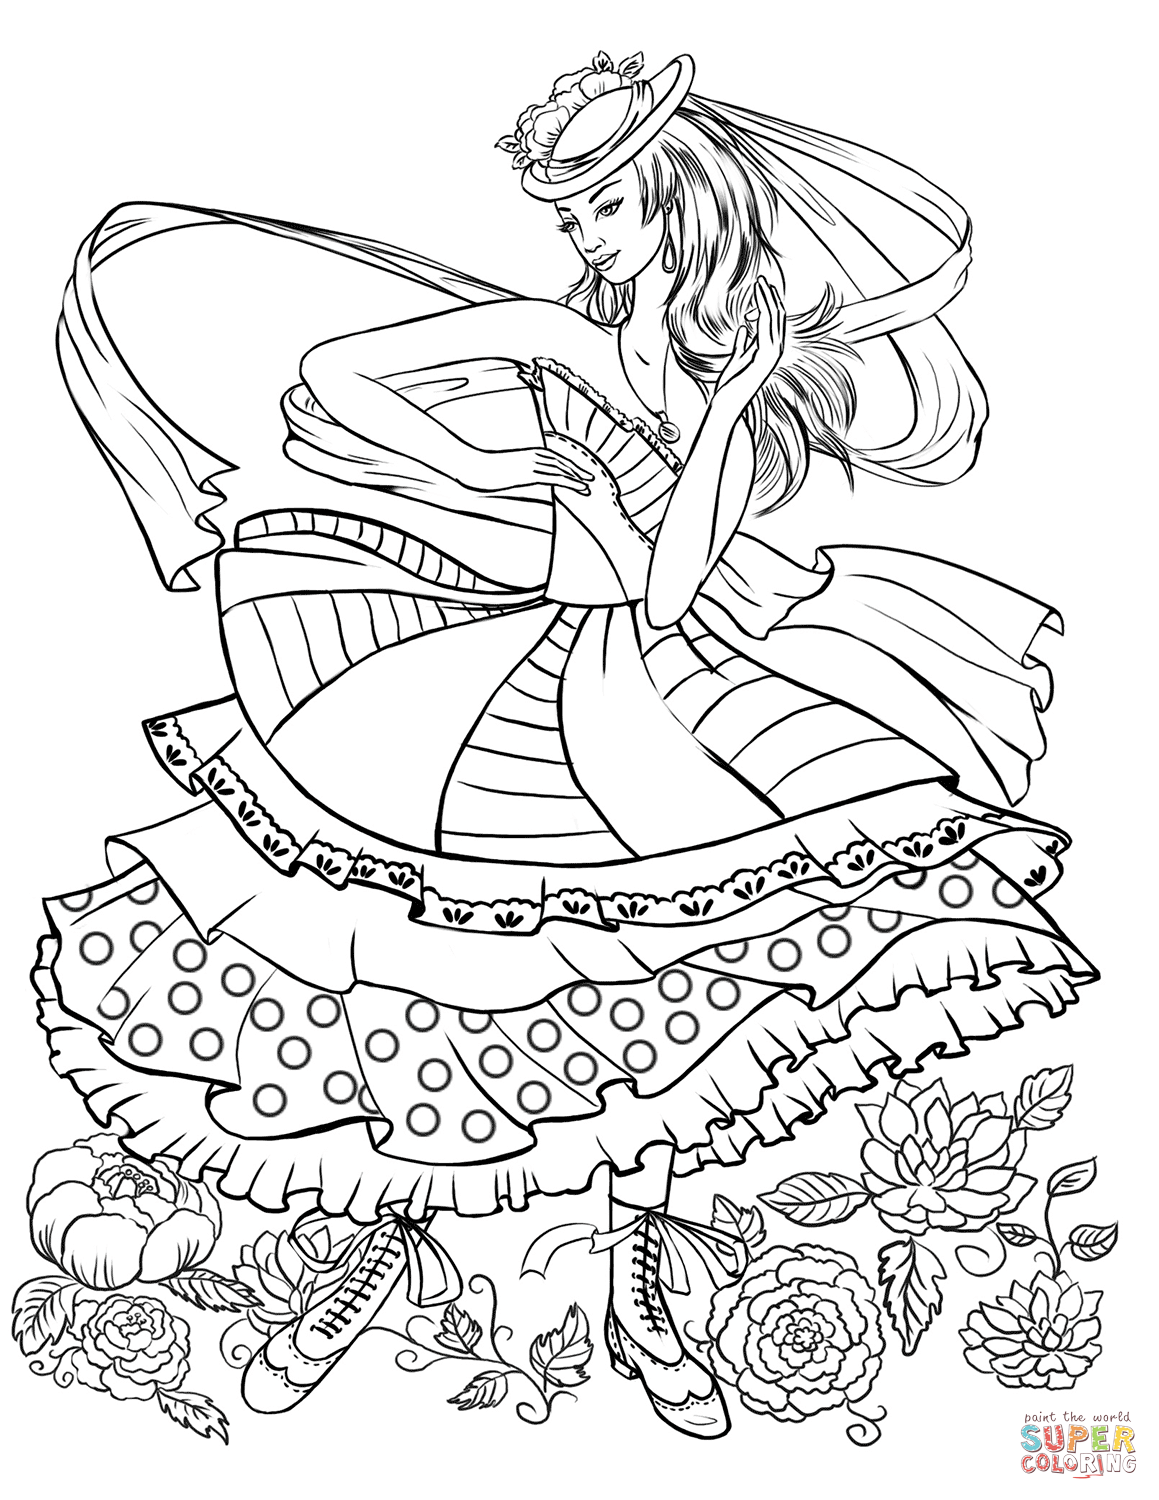 Coloring Page ~ The Fashion Coloring Book Carol Chuthe Chus Luxury